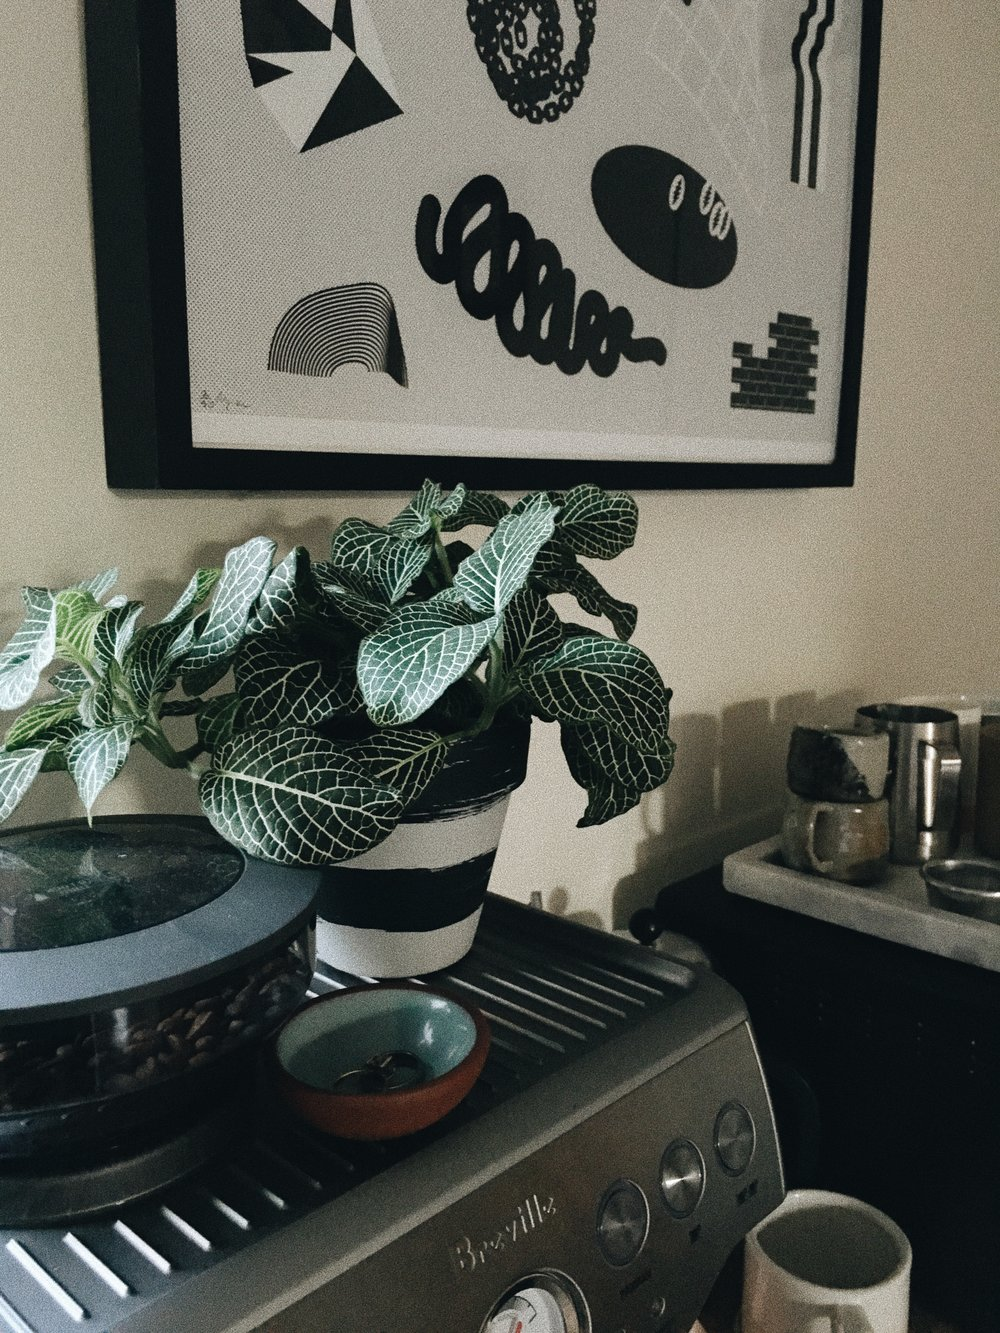 New home for our planter 002 + new print by Troy Lehmann